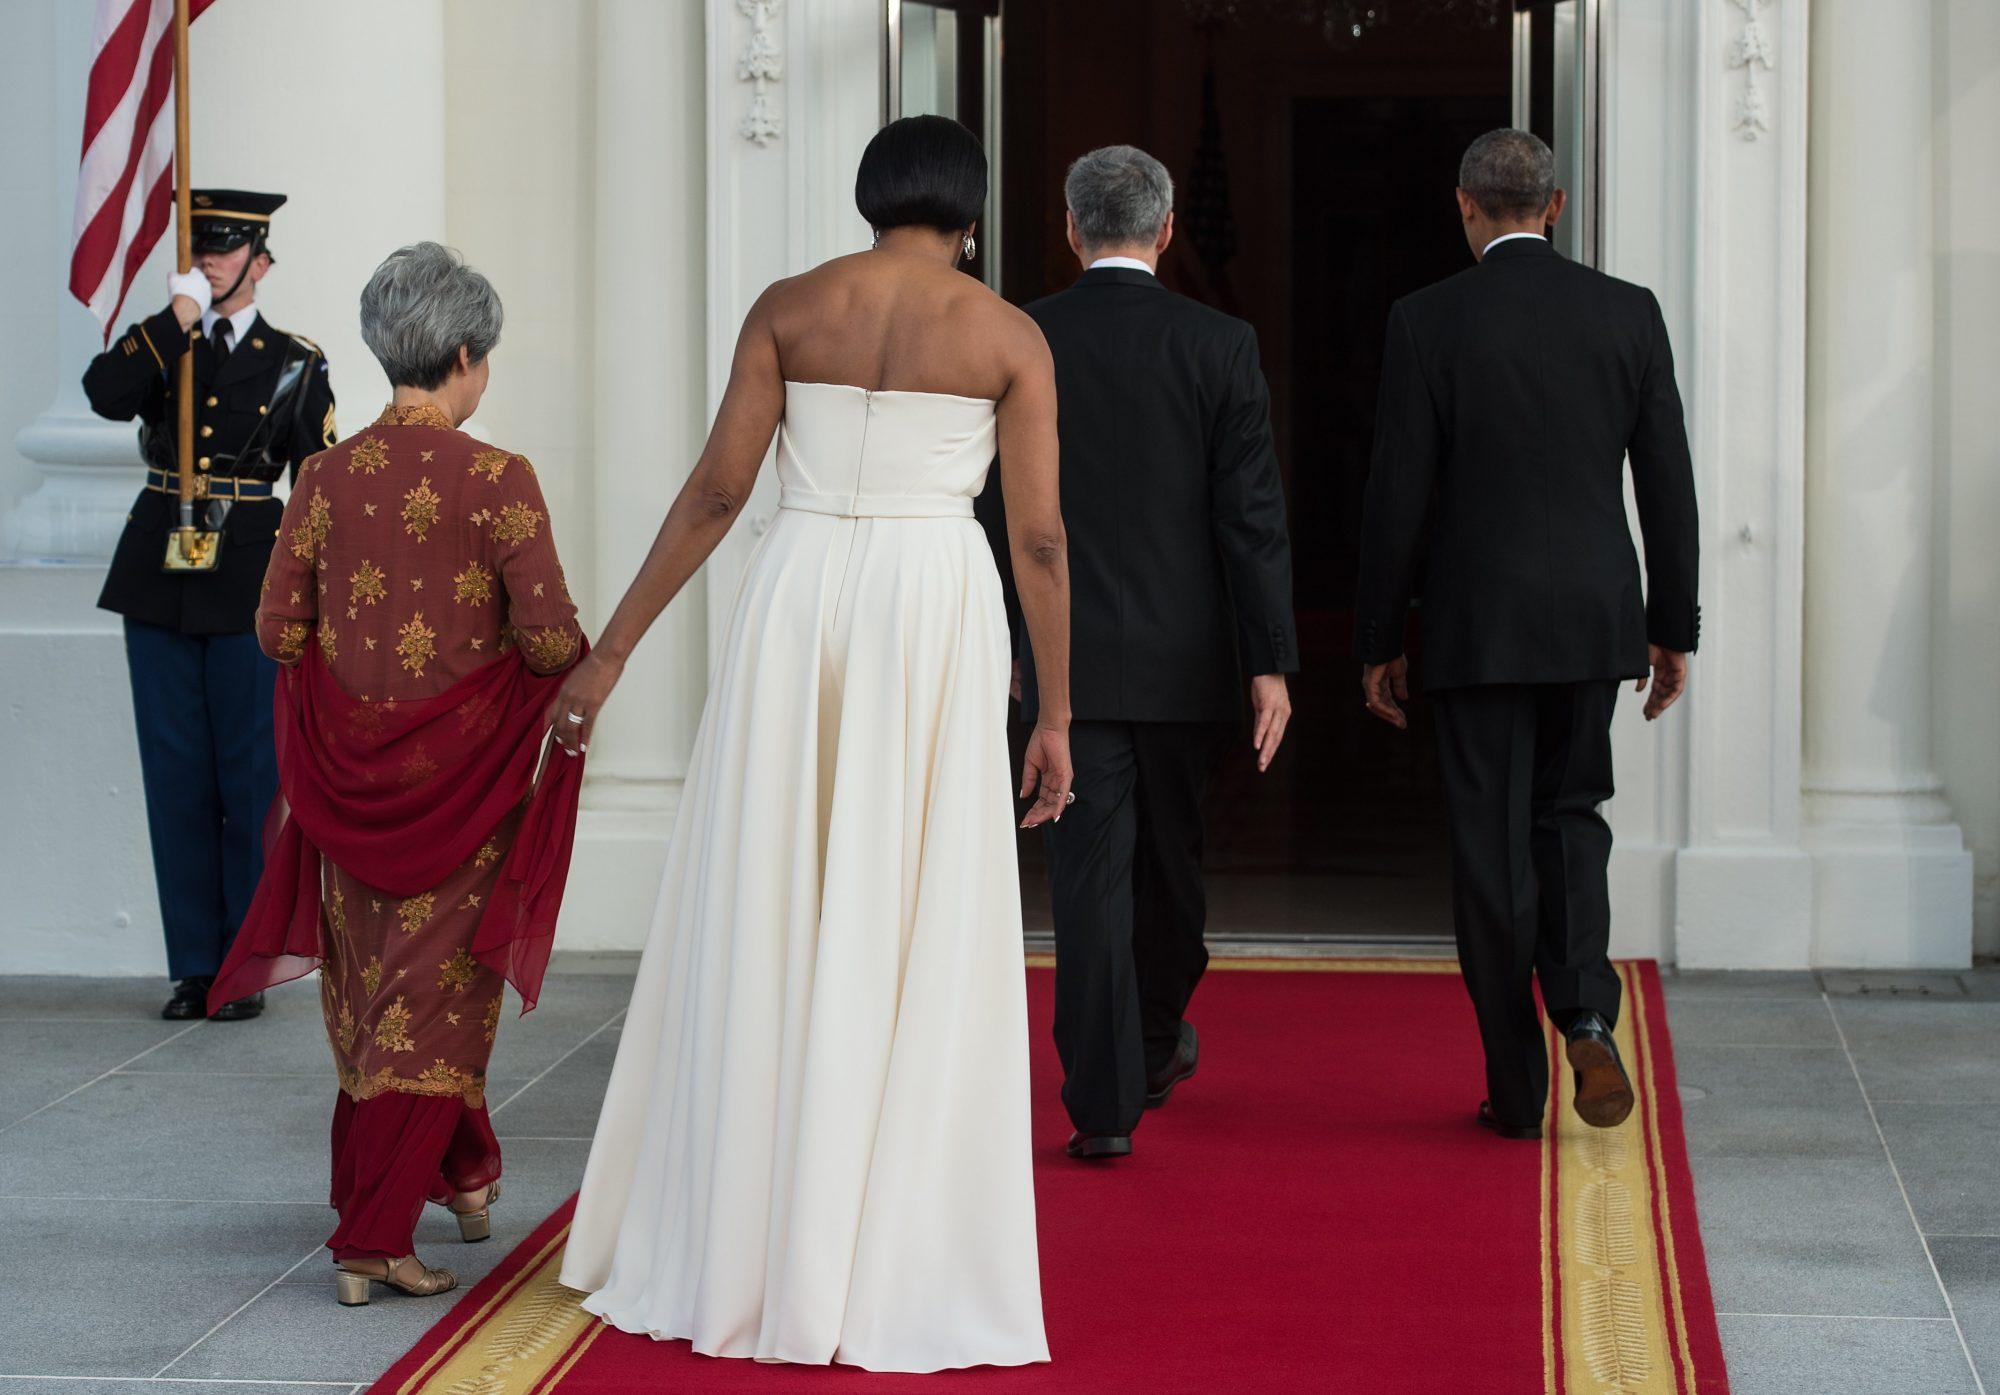 US President Barack Obama (R), First Lady Michelle Obama (2nd L) walk into the White with Singapore's Prime Minister Lee Hsien Loong (2nd R) and his wife Ho Ching (L) for a state dinner at the White House in Washington, DC, on August 2, 2016. / AFP / NICHOLAS KAMM        (Photo credit should read NICHOLAS KAMM/AFP/Getty Images)